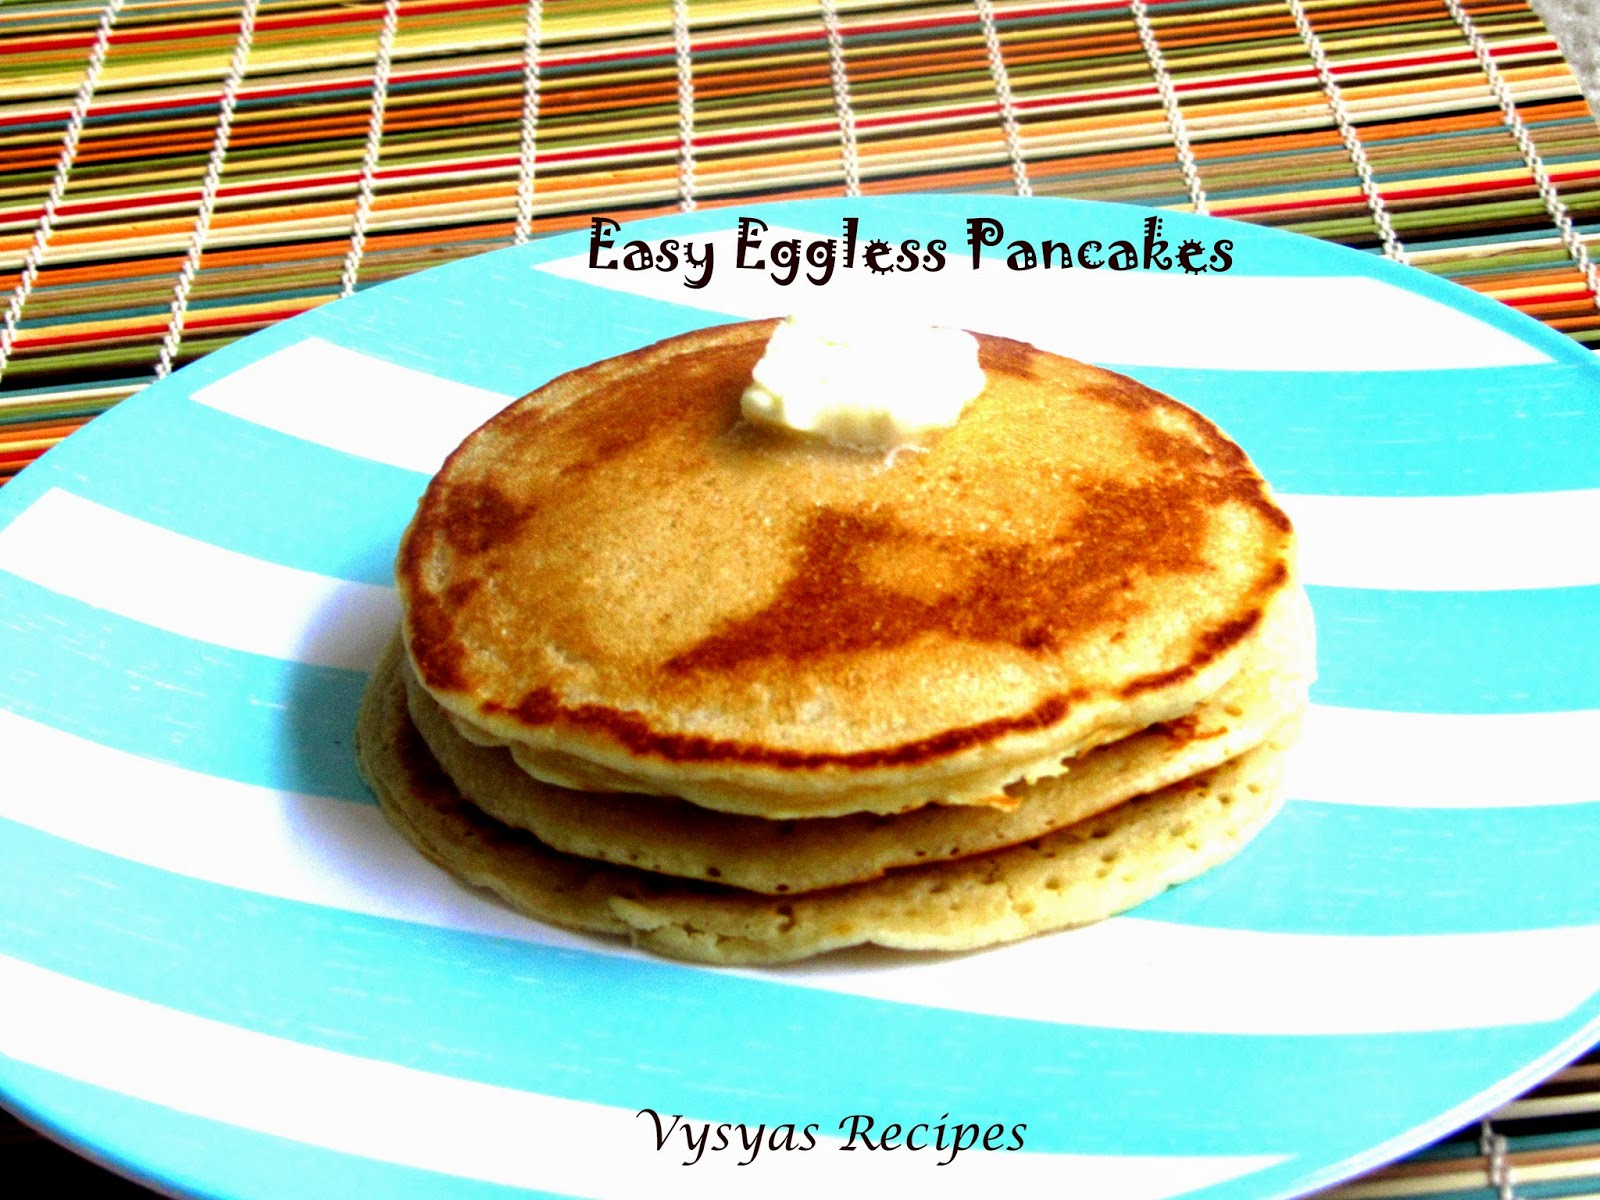 Vysyas delicious recipes eggless pancake recipe easy spongy eggless pancake recipe easy spongy fluffy pancakes with step wise pictures ccuart Choice Image